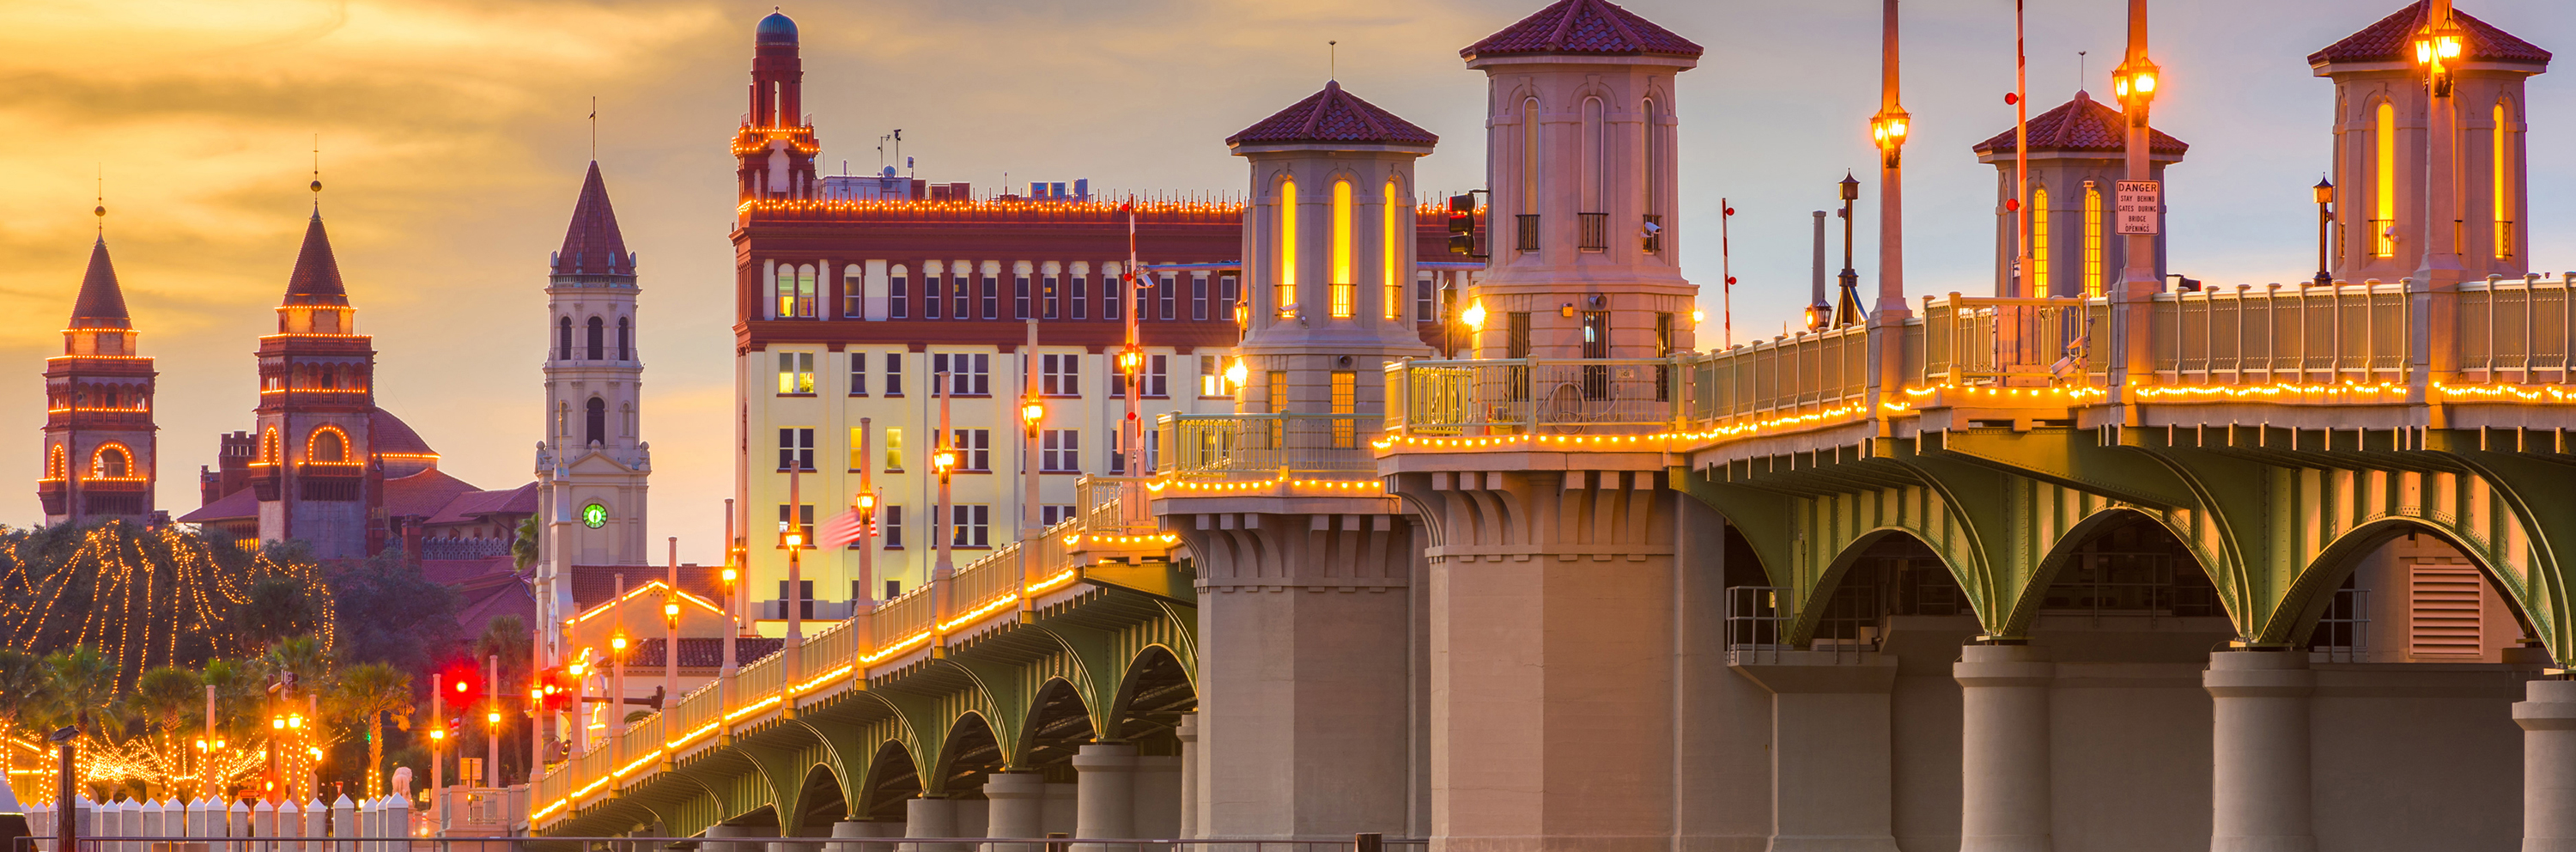 ST AUGUSTINE BRIDGE OF LIONS